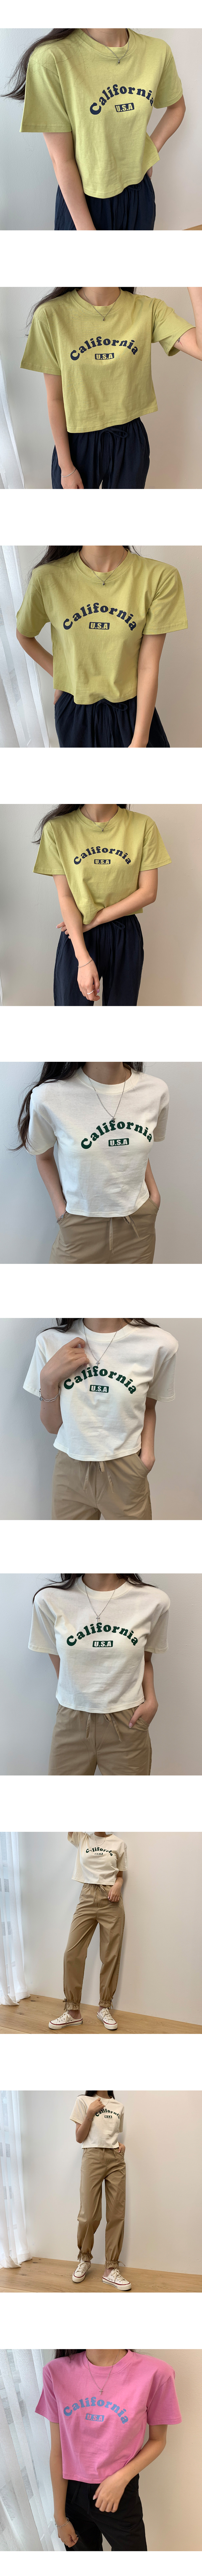 California lettering print short sleeve cropped t-shirt